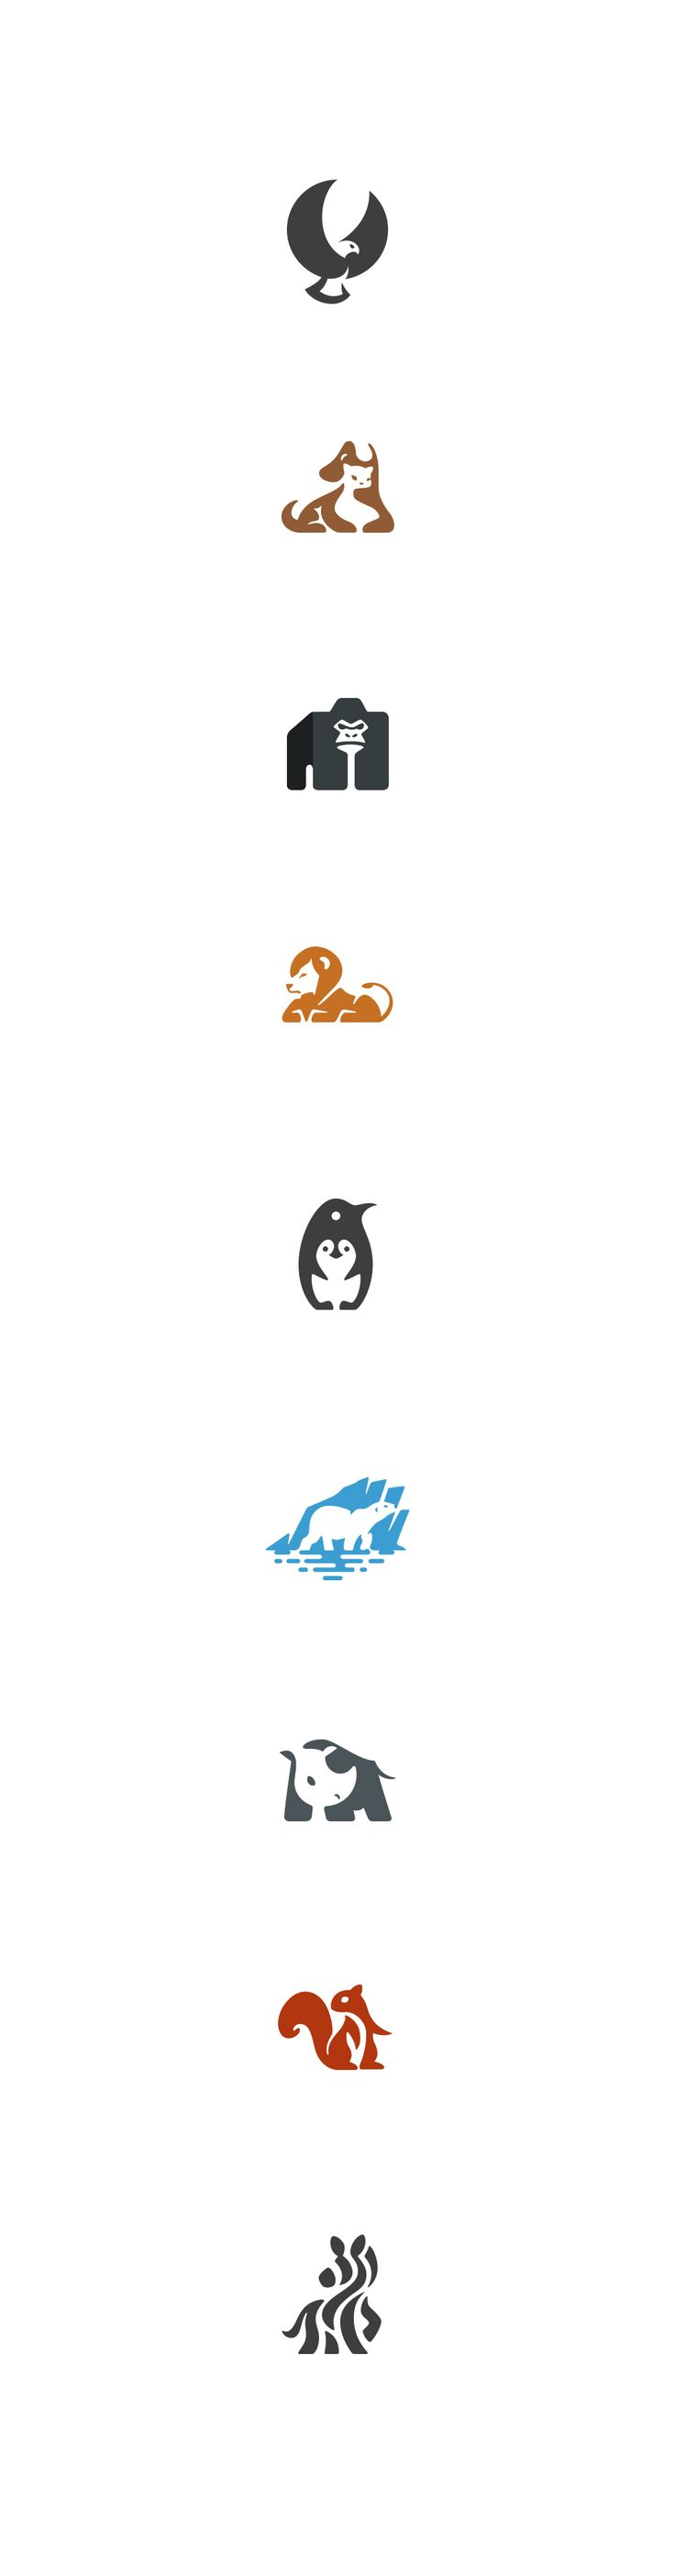 Fantastic negative space illustrations! These are all so clever.